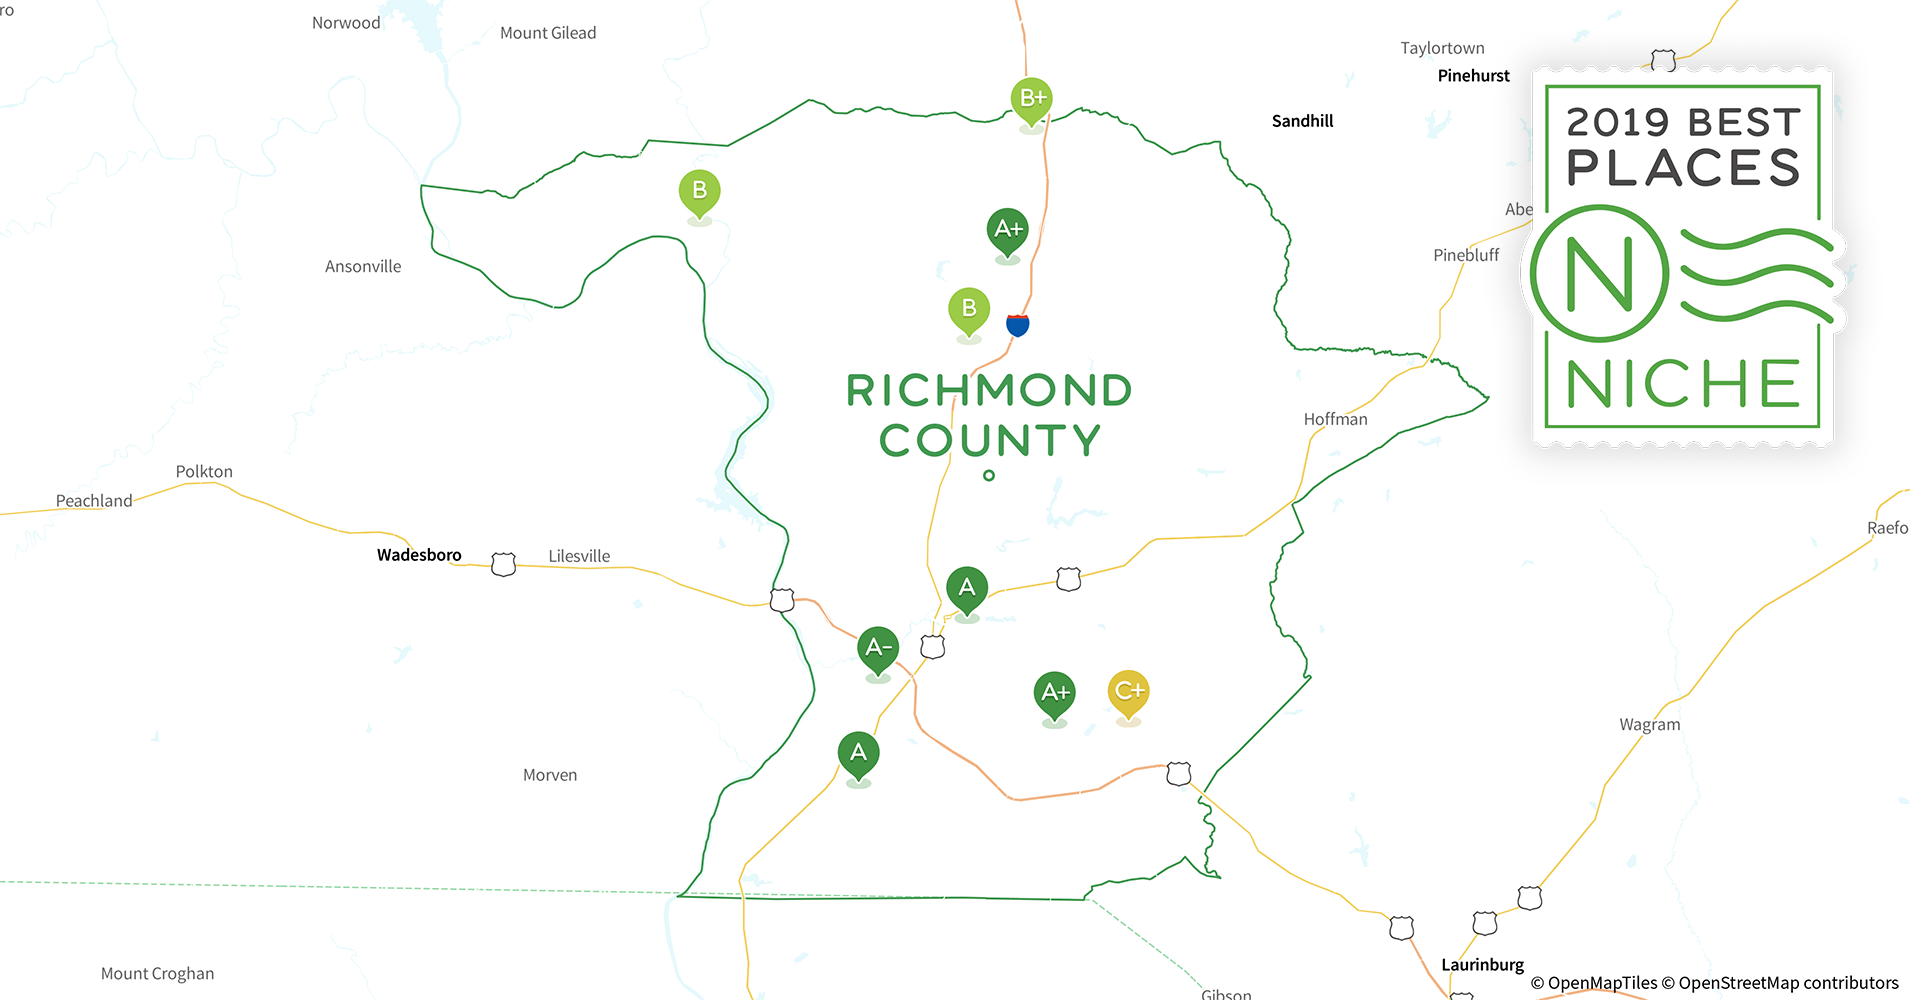 Richmond County Nc Map.2019 Best Places To Live In Richmond County Nc Niche